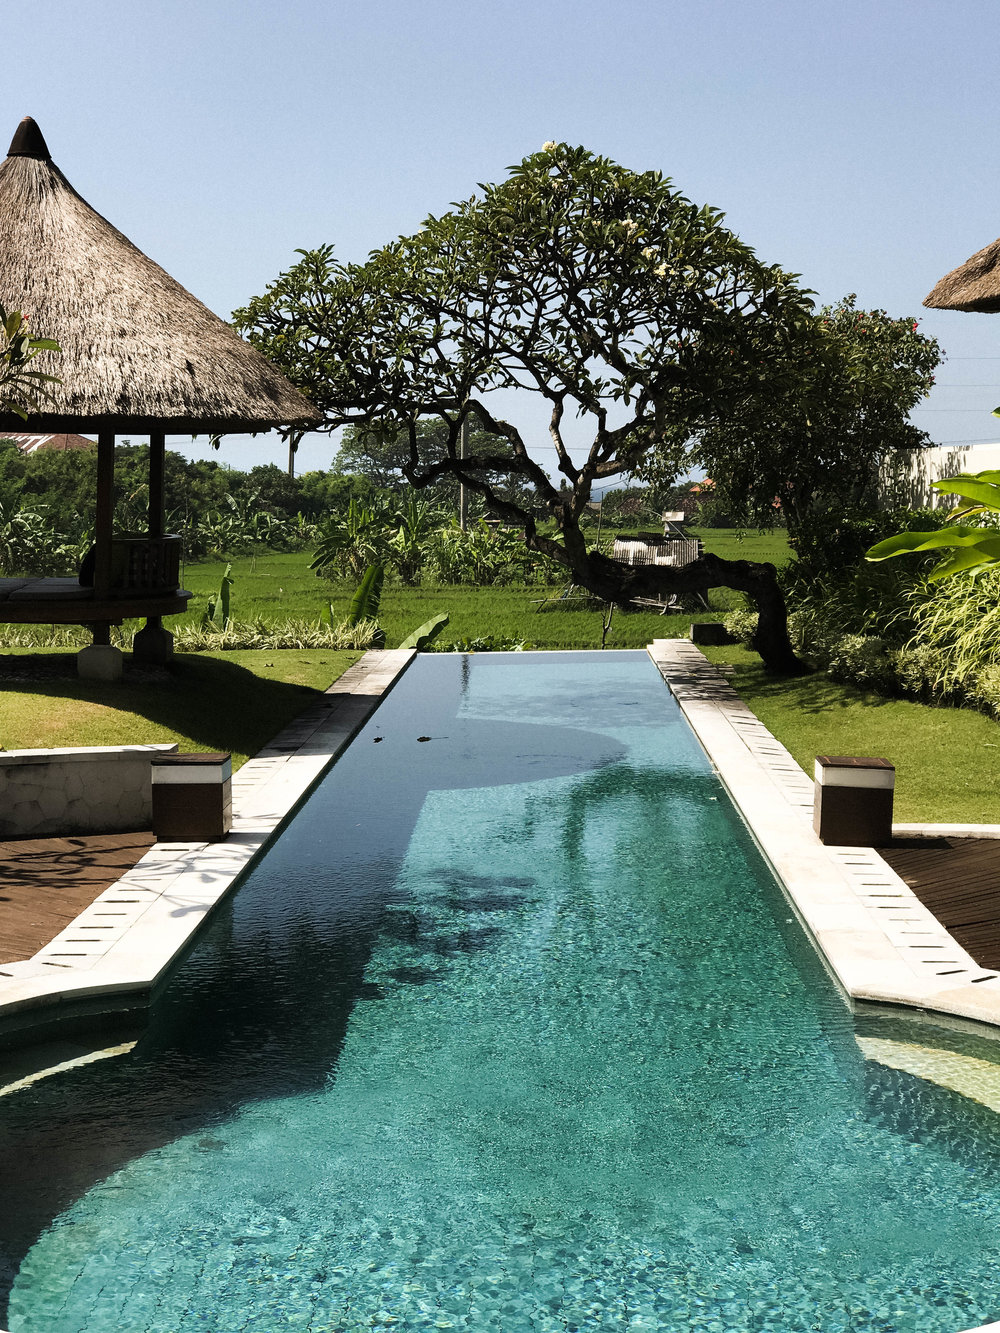 The Samata in Bali, Indonesia